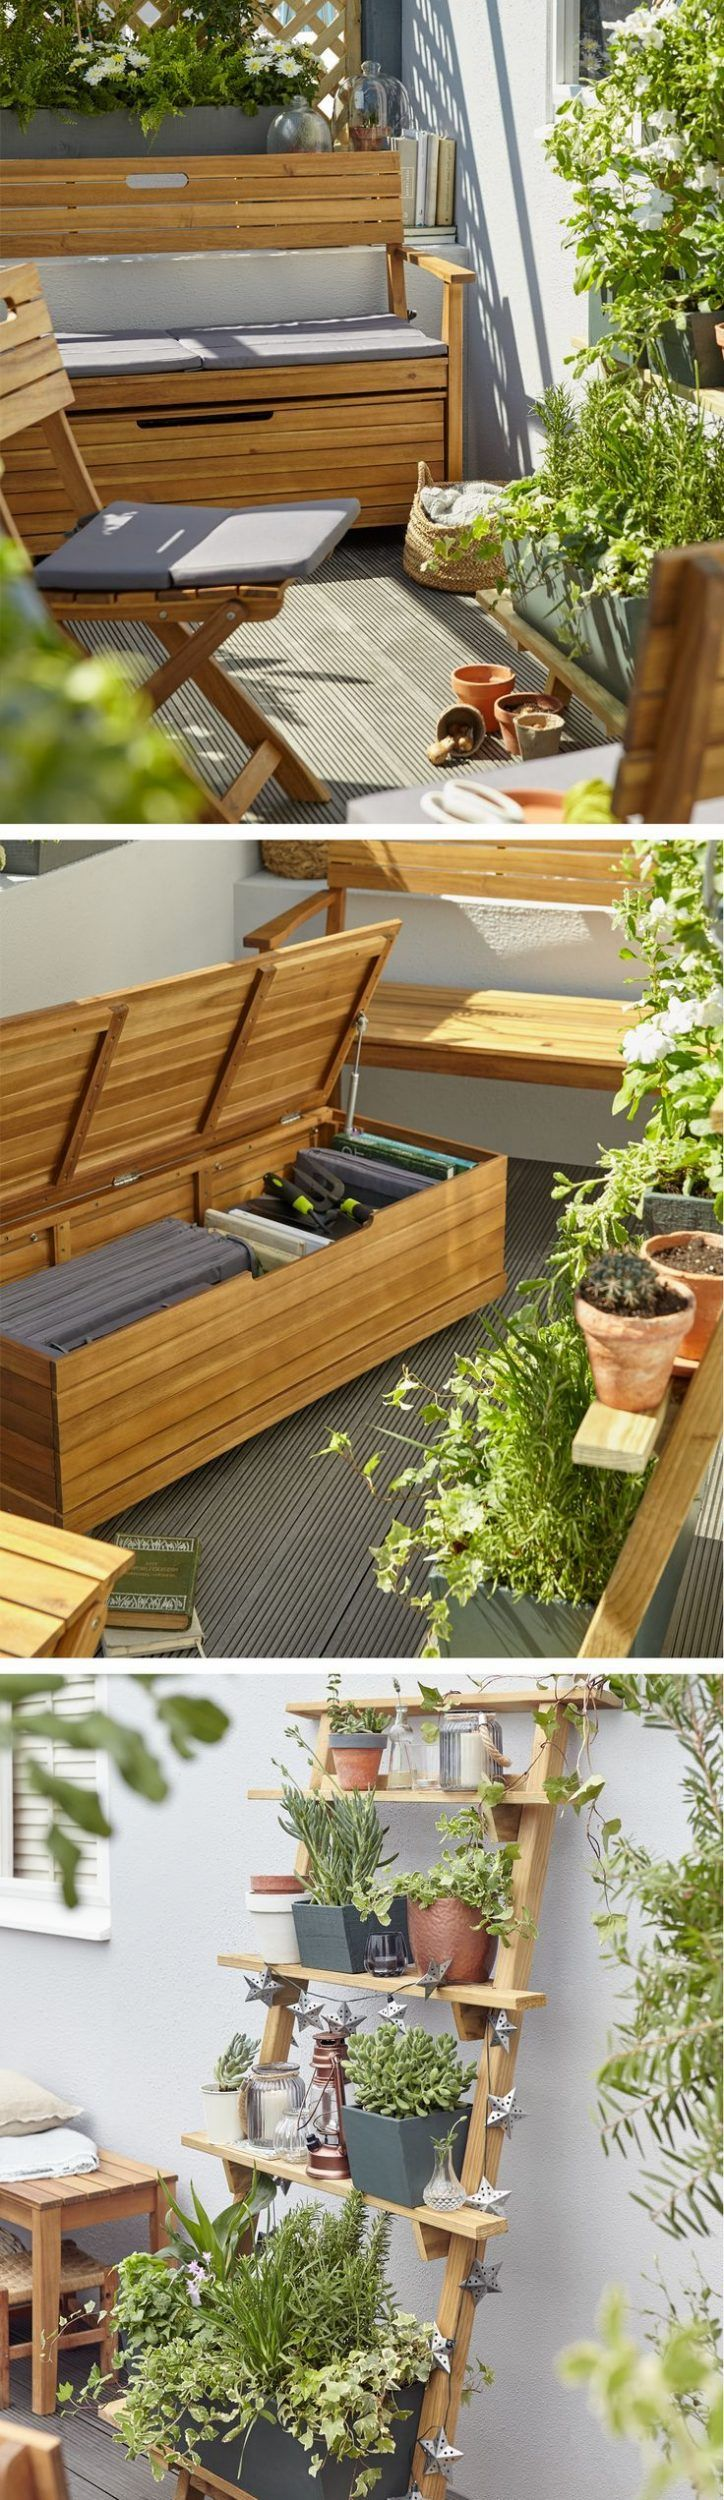 die besten 25 terrassen ideen ideen auf pinterest balkon ideen dachterrasse oder balkon und. Black Bedroom Furniture Sets. Home Design Ideas